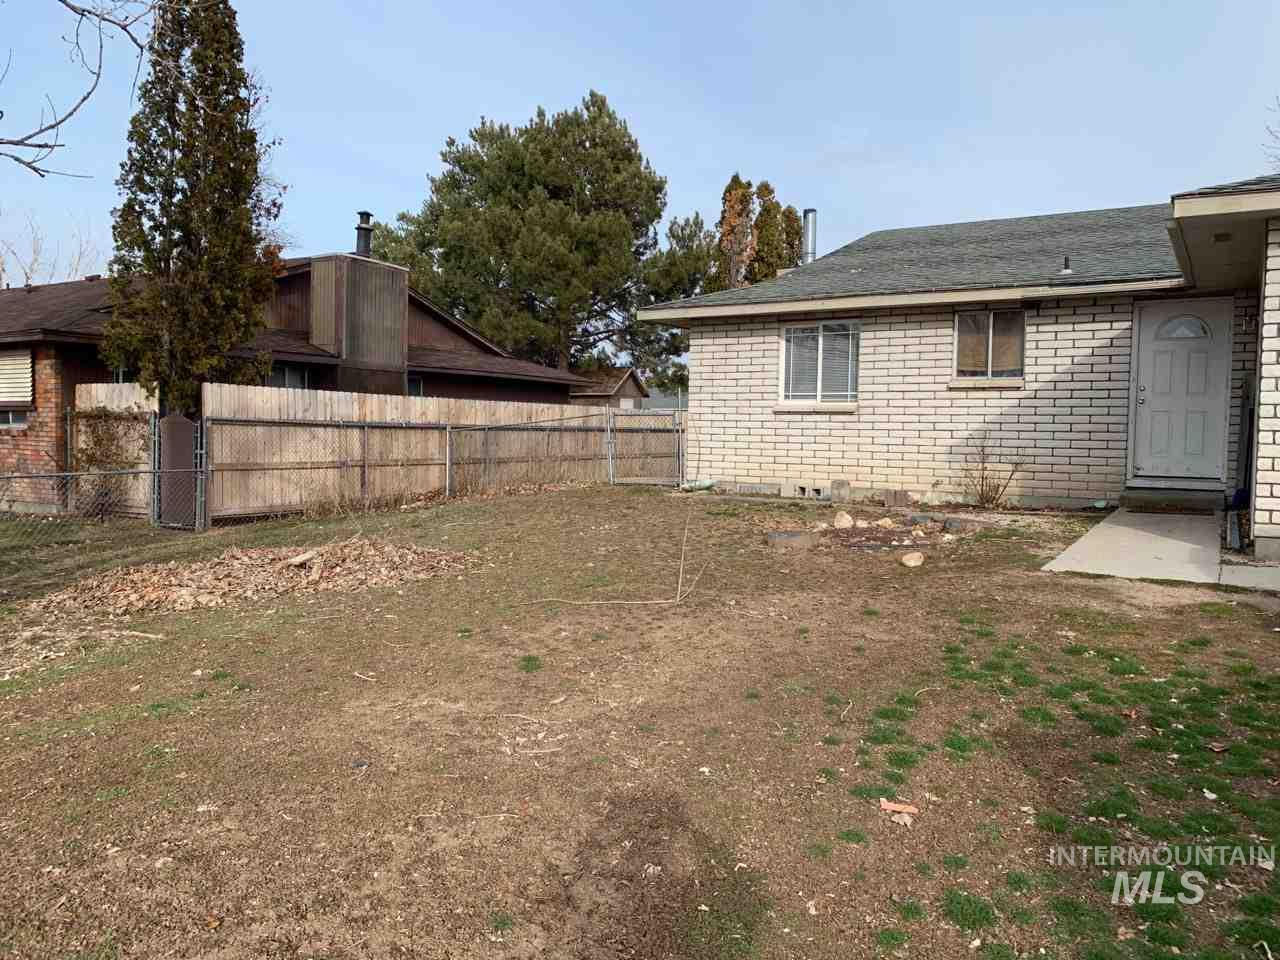 3820 S Upland Ave., Boise, Idaho 83709, 3 Bedrooms, 1 Bathroom, Residential Income For Sale, Price $300,000, 98721704